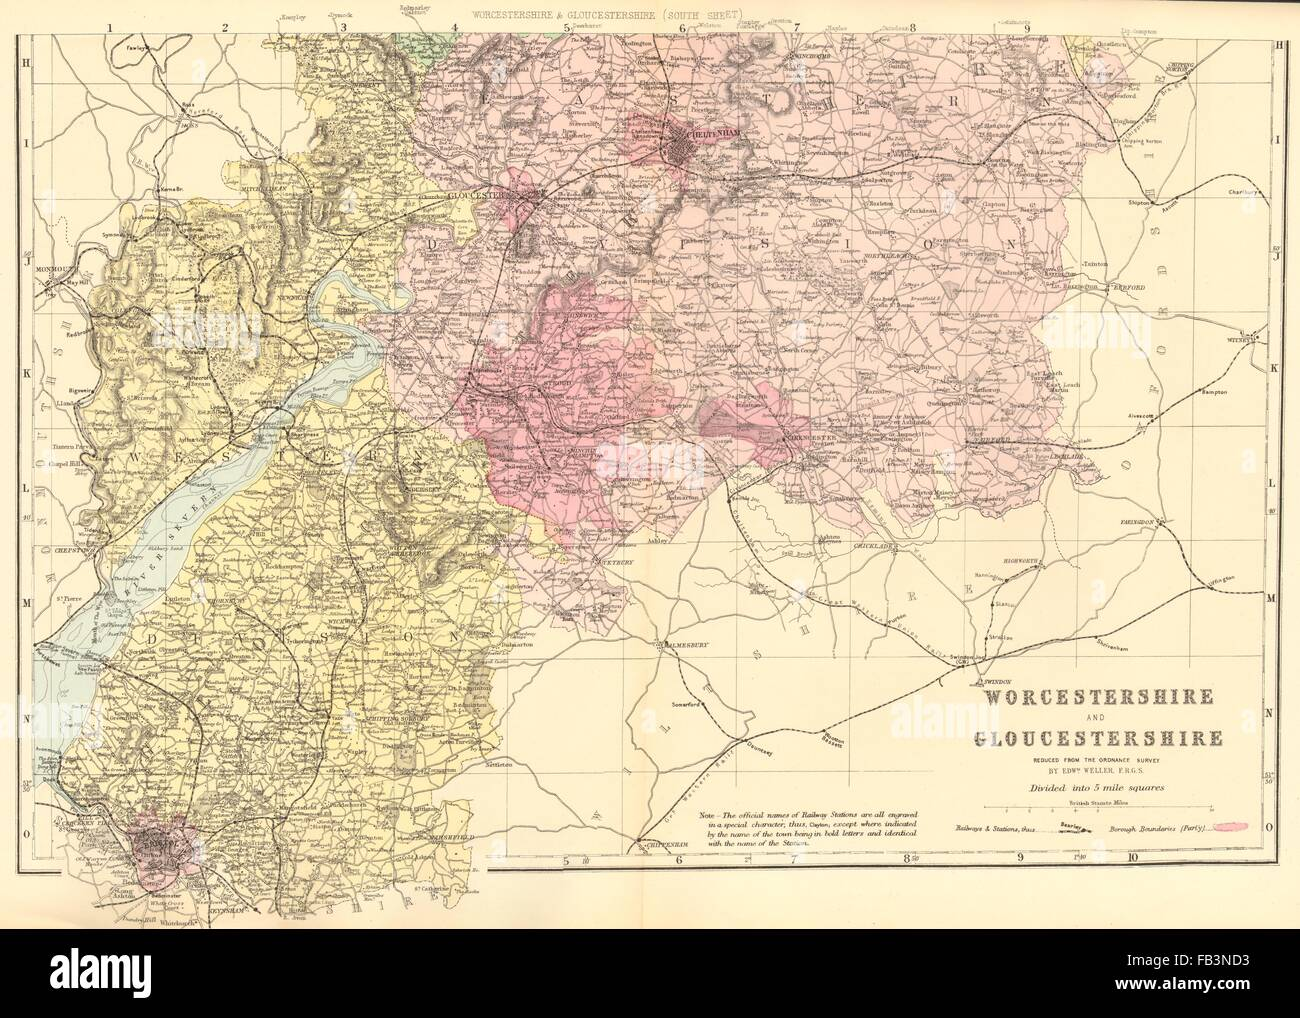 Carte Angleterre Gloucester.Gloucestershire Map Photos Gloucestershire Map Images Alamy